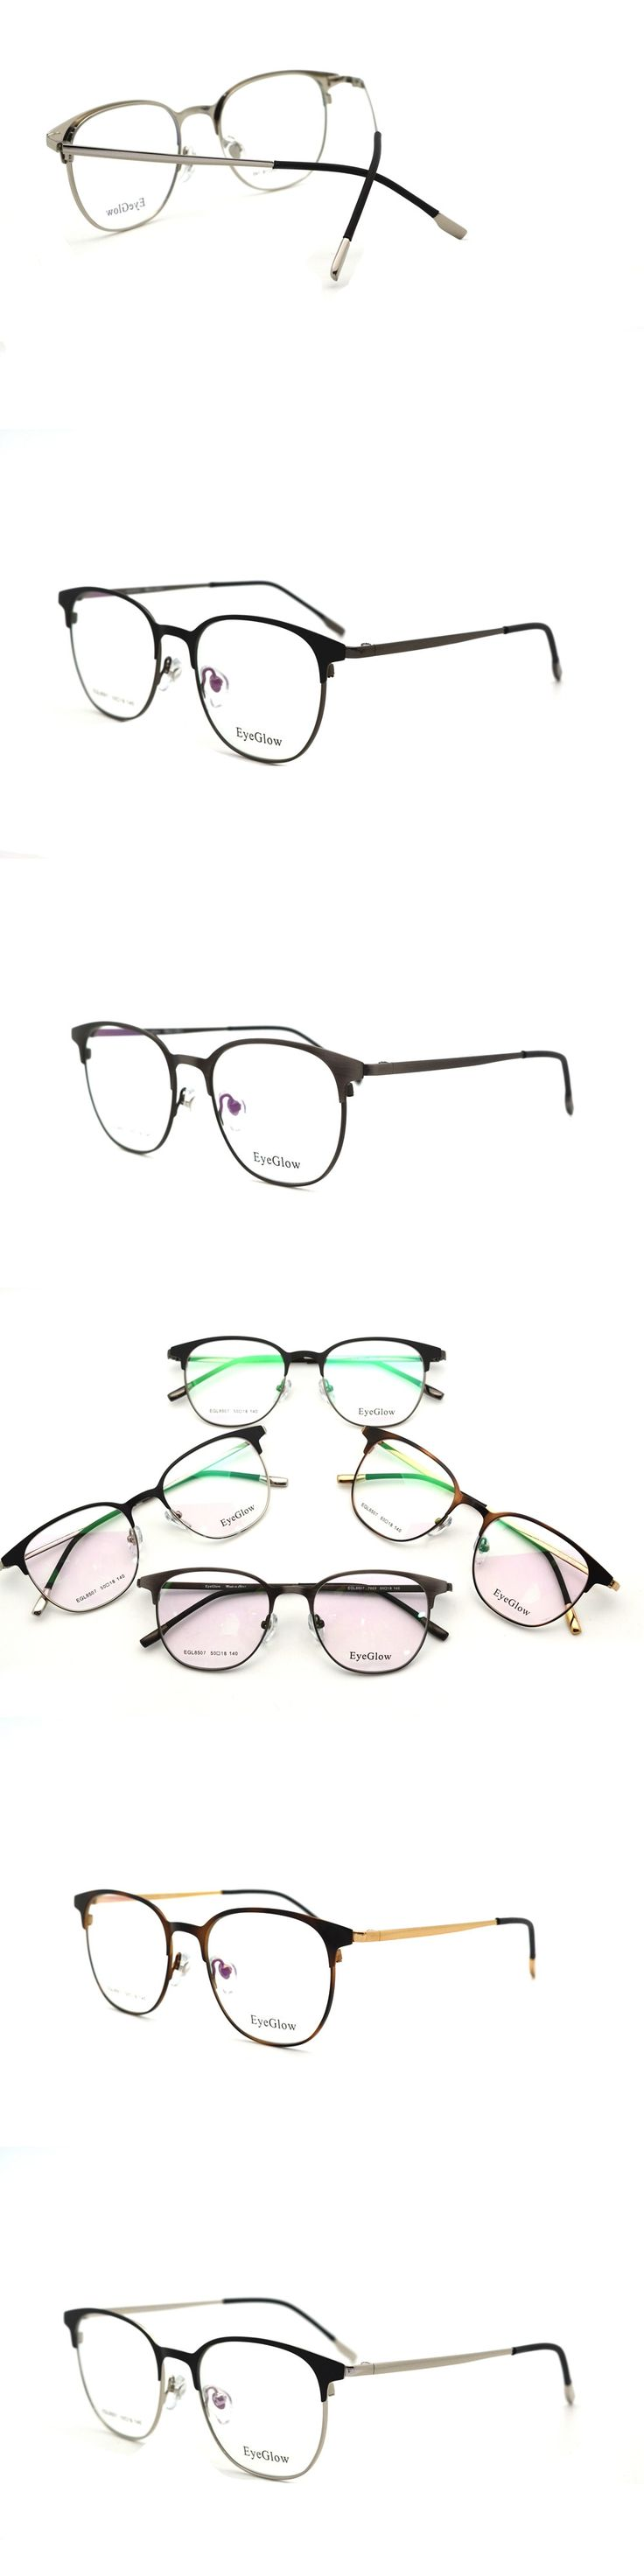 Fashion metal Half frame glasses for women round myopic Prescription glasses can make reading glasses and clear glasses lens